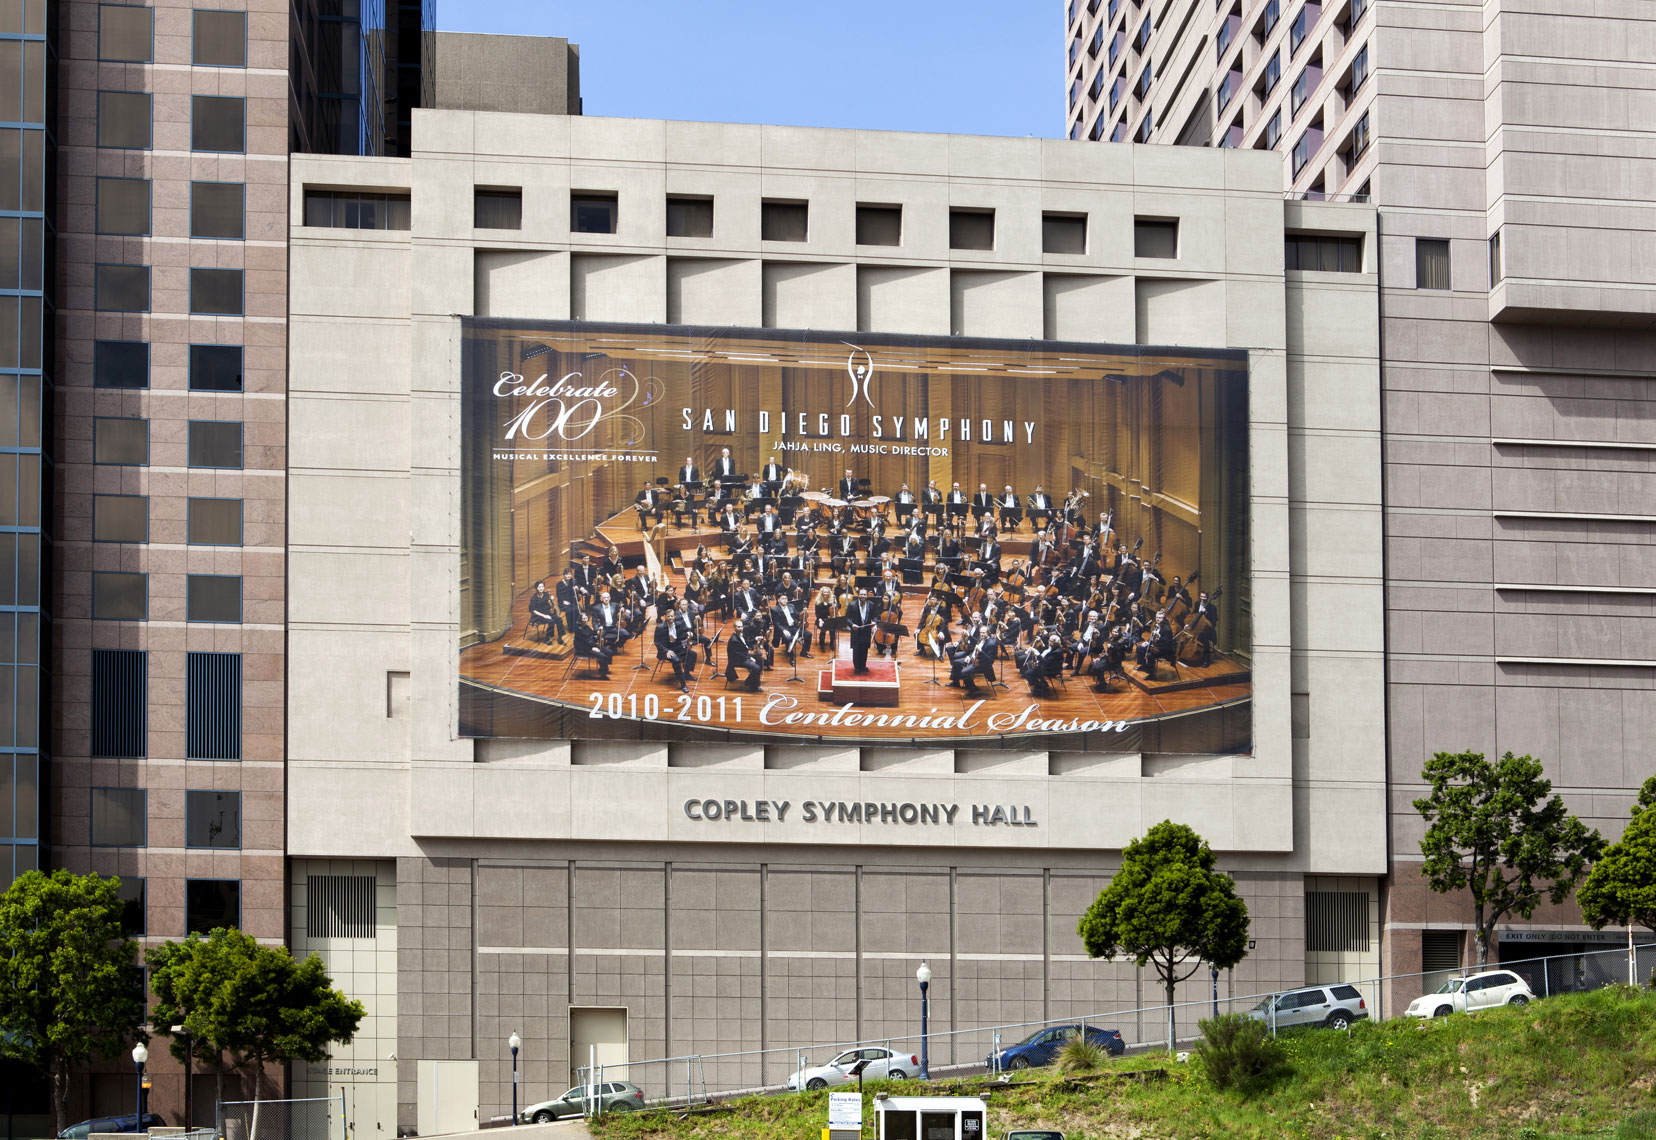 Group Photograph San Diego Symphony Banner Advertising